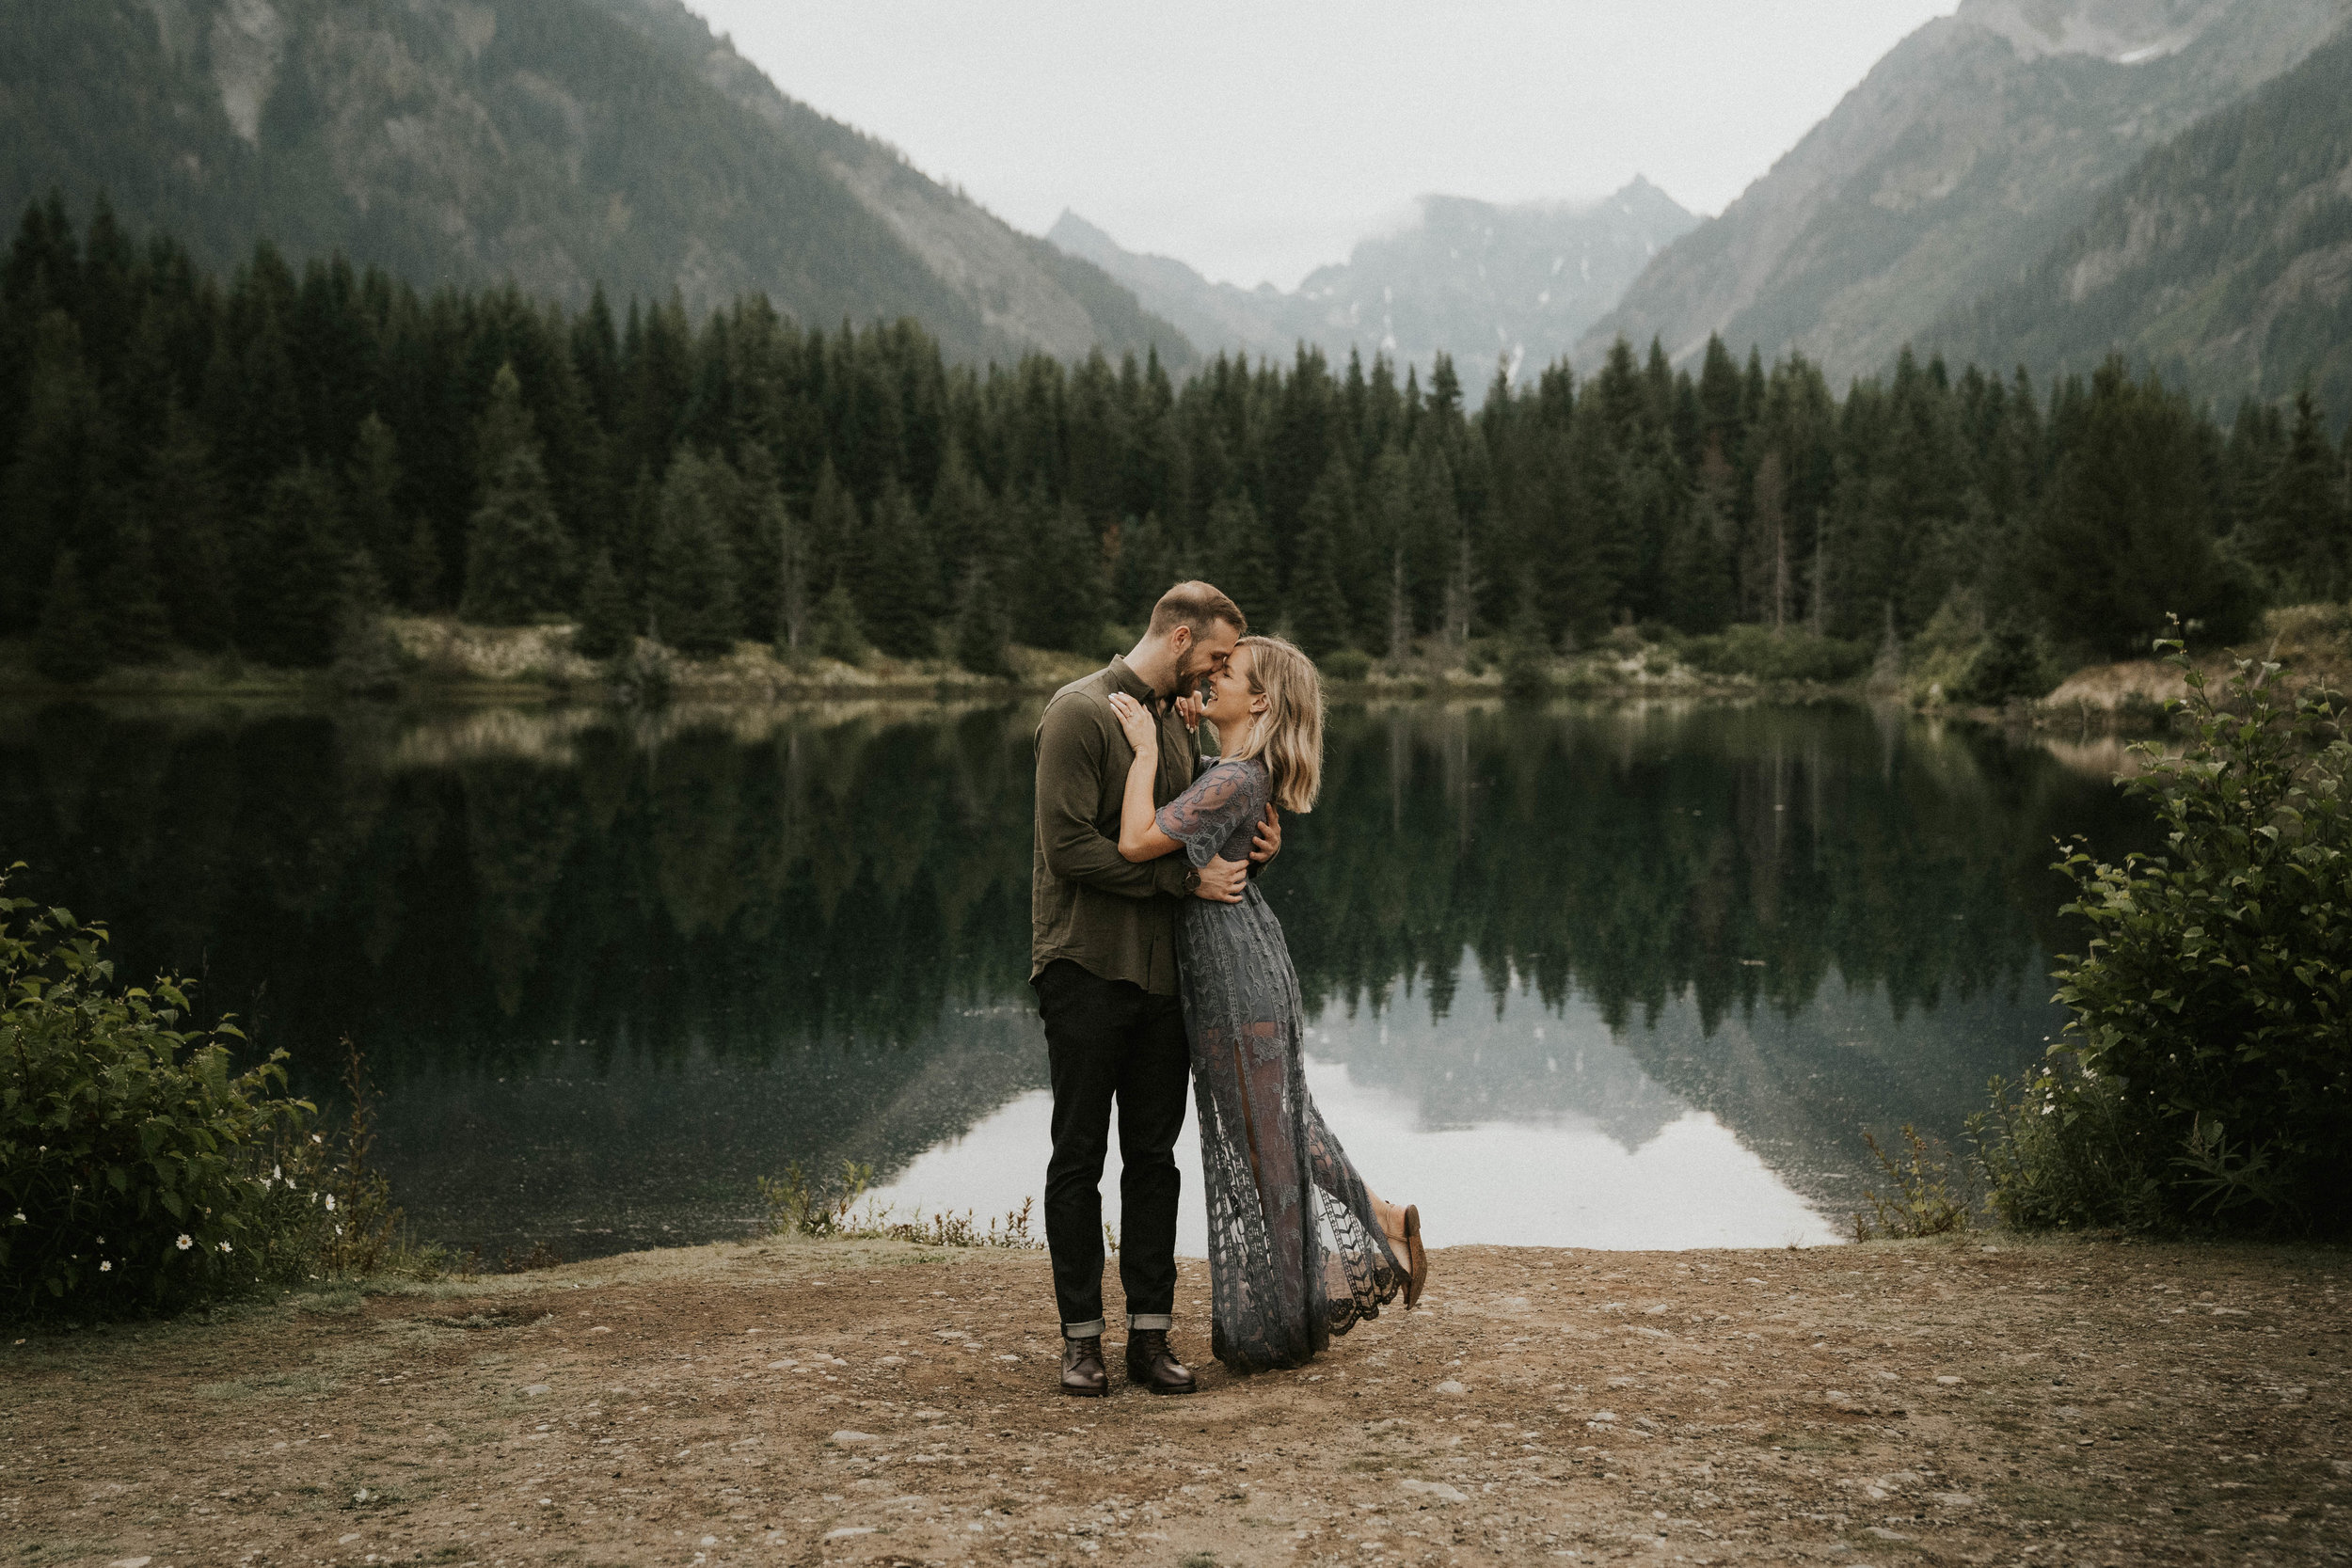 gold-creek-pond-engagement-session-seattle-wedding-photographer